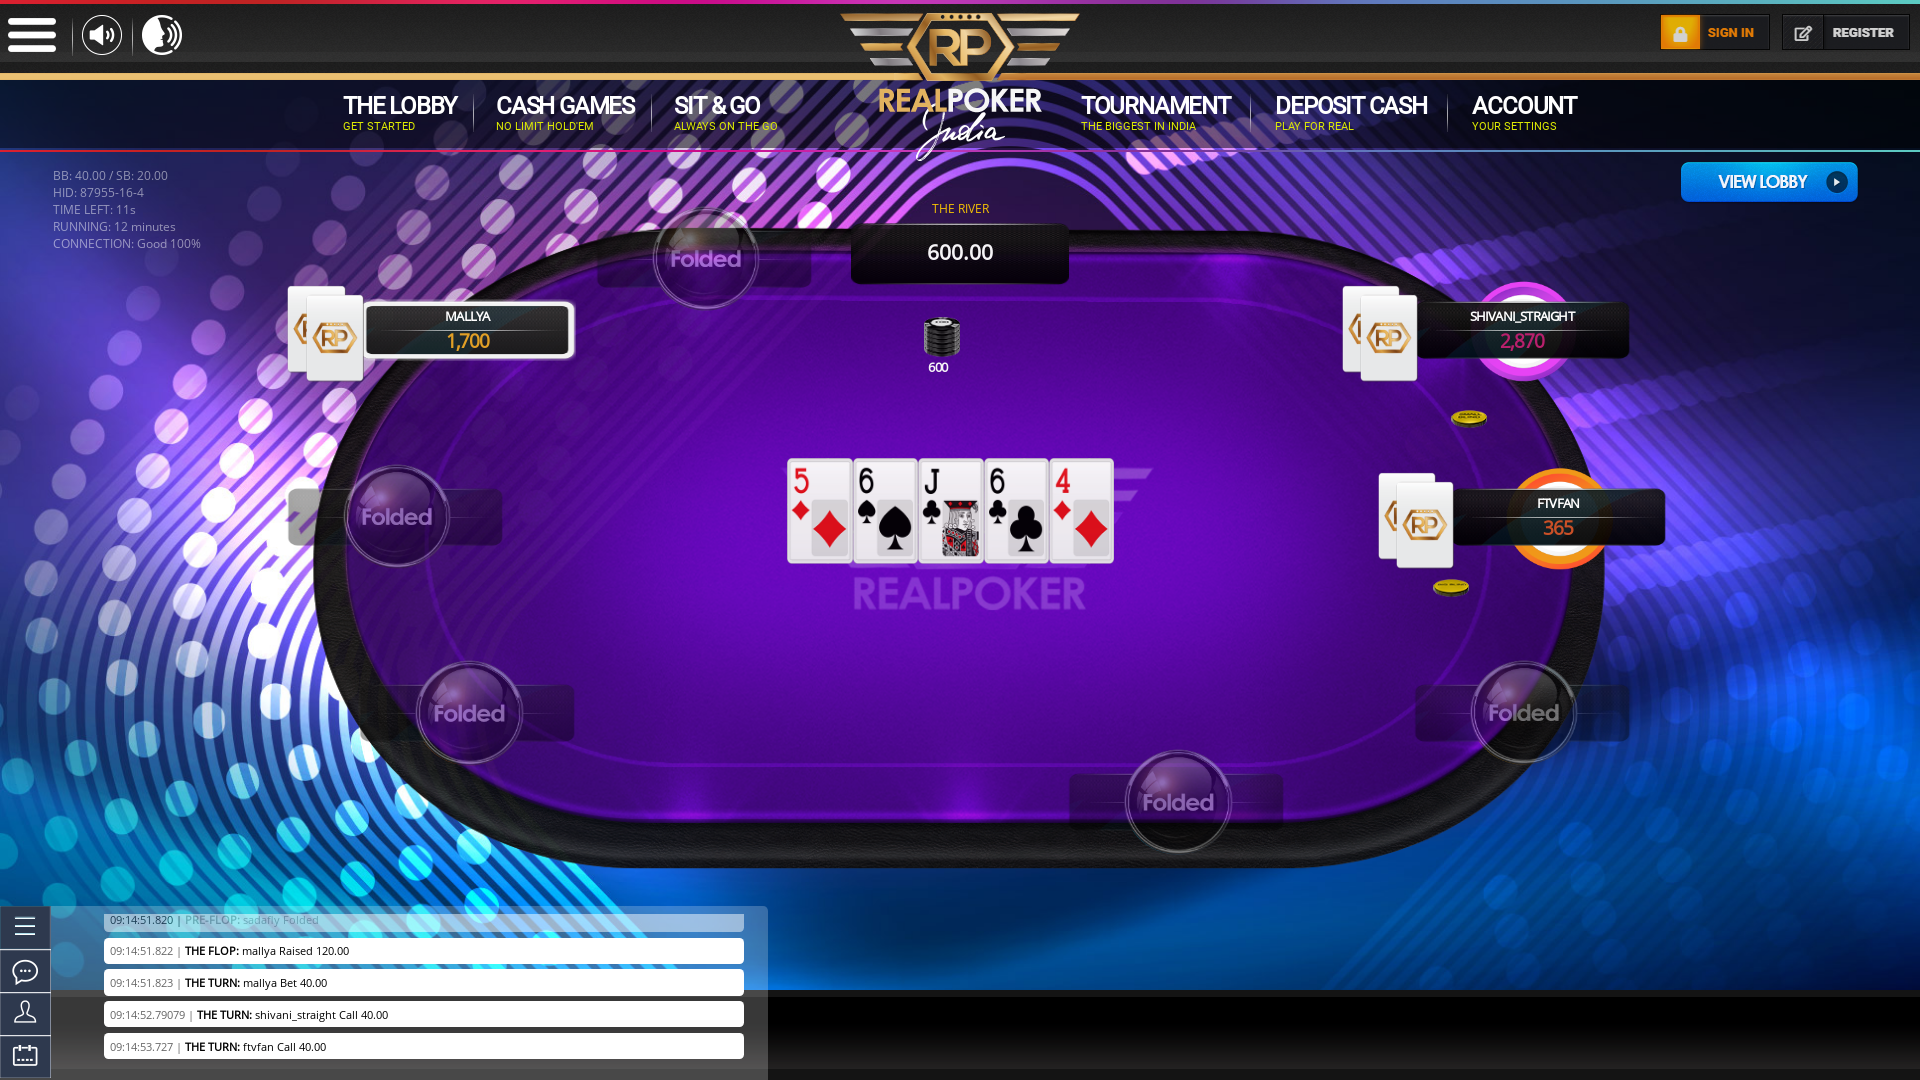 Casino Poker - 750.00 SNG  NL on the 5th July